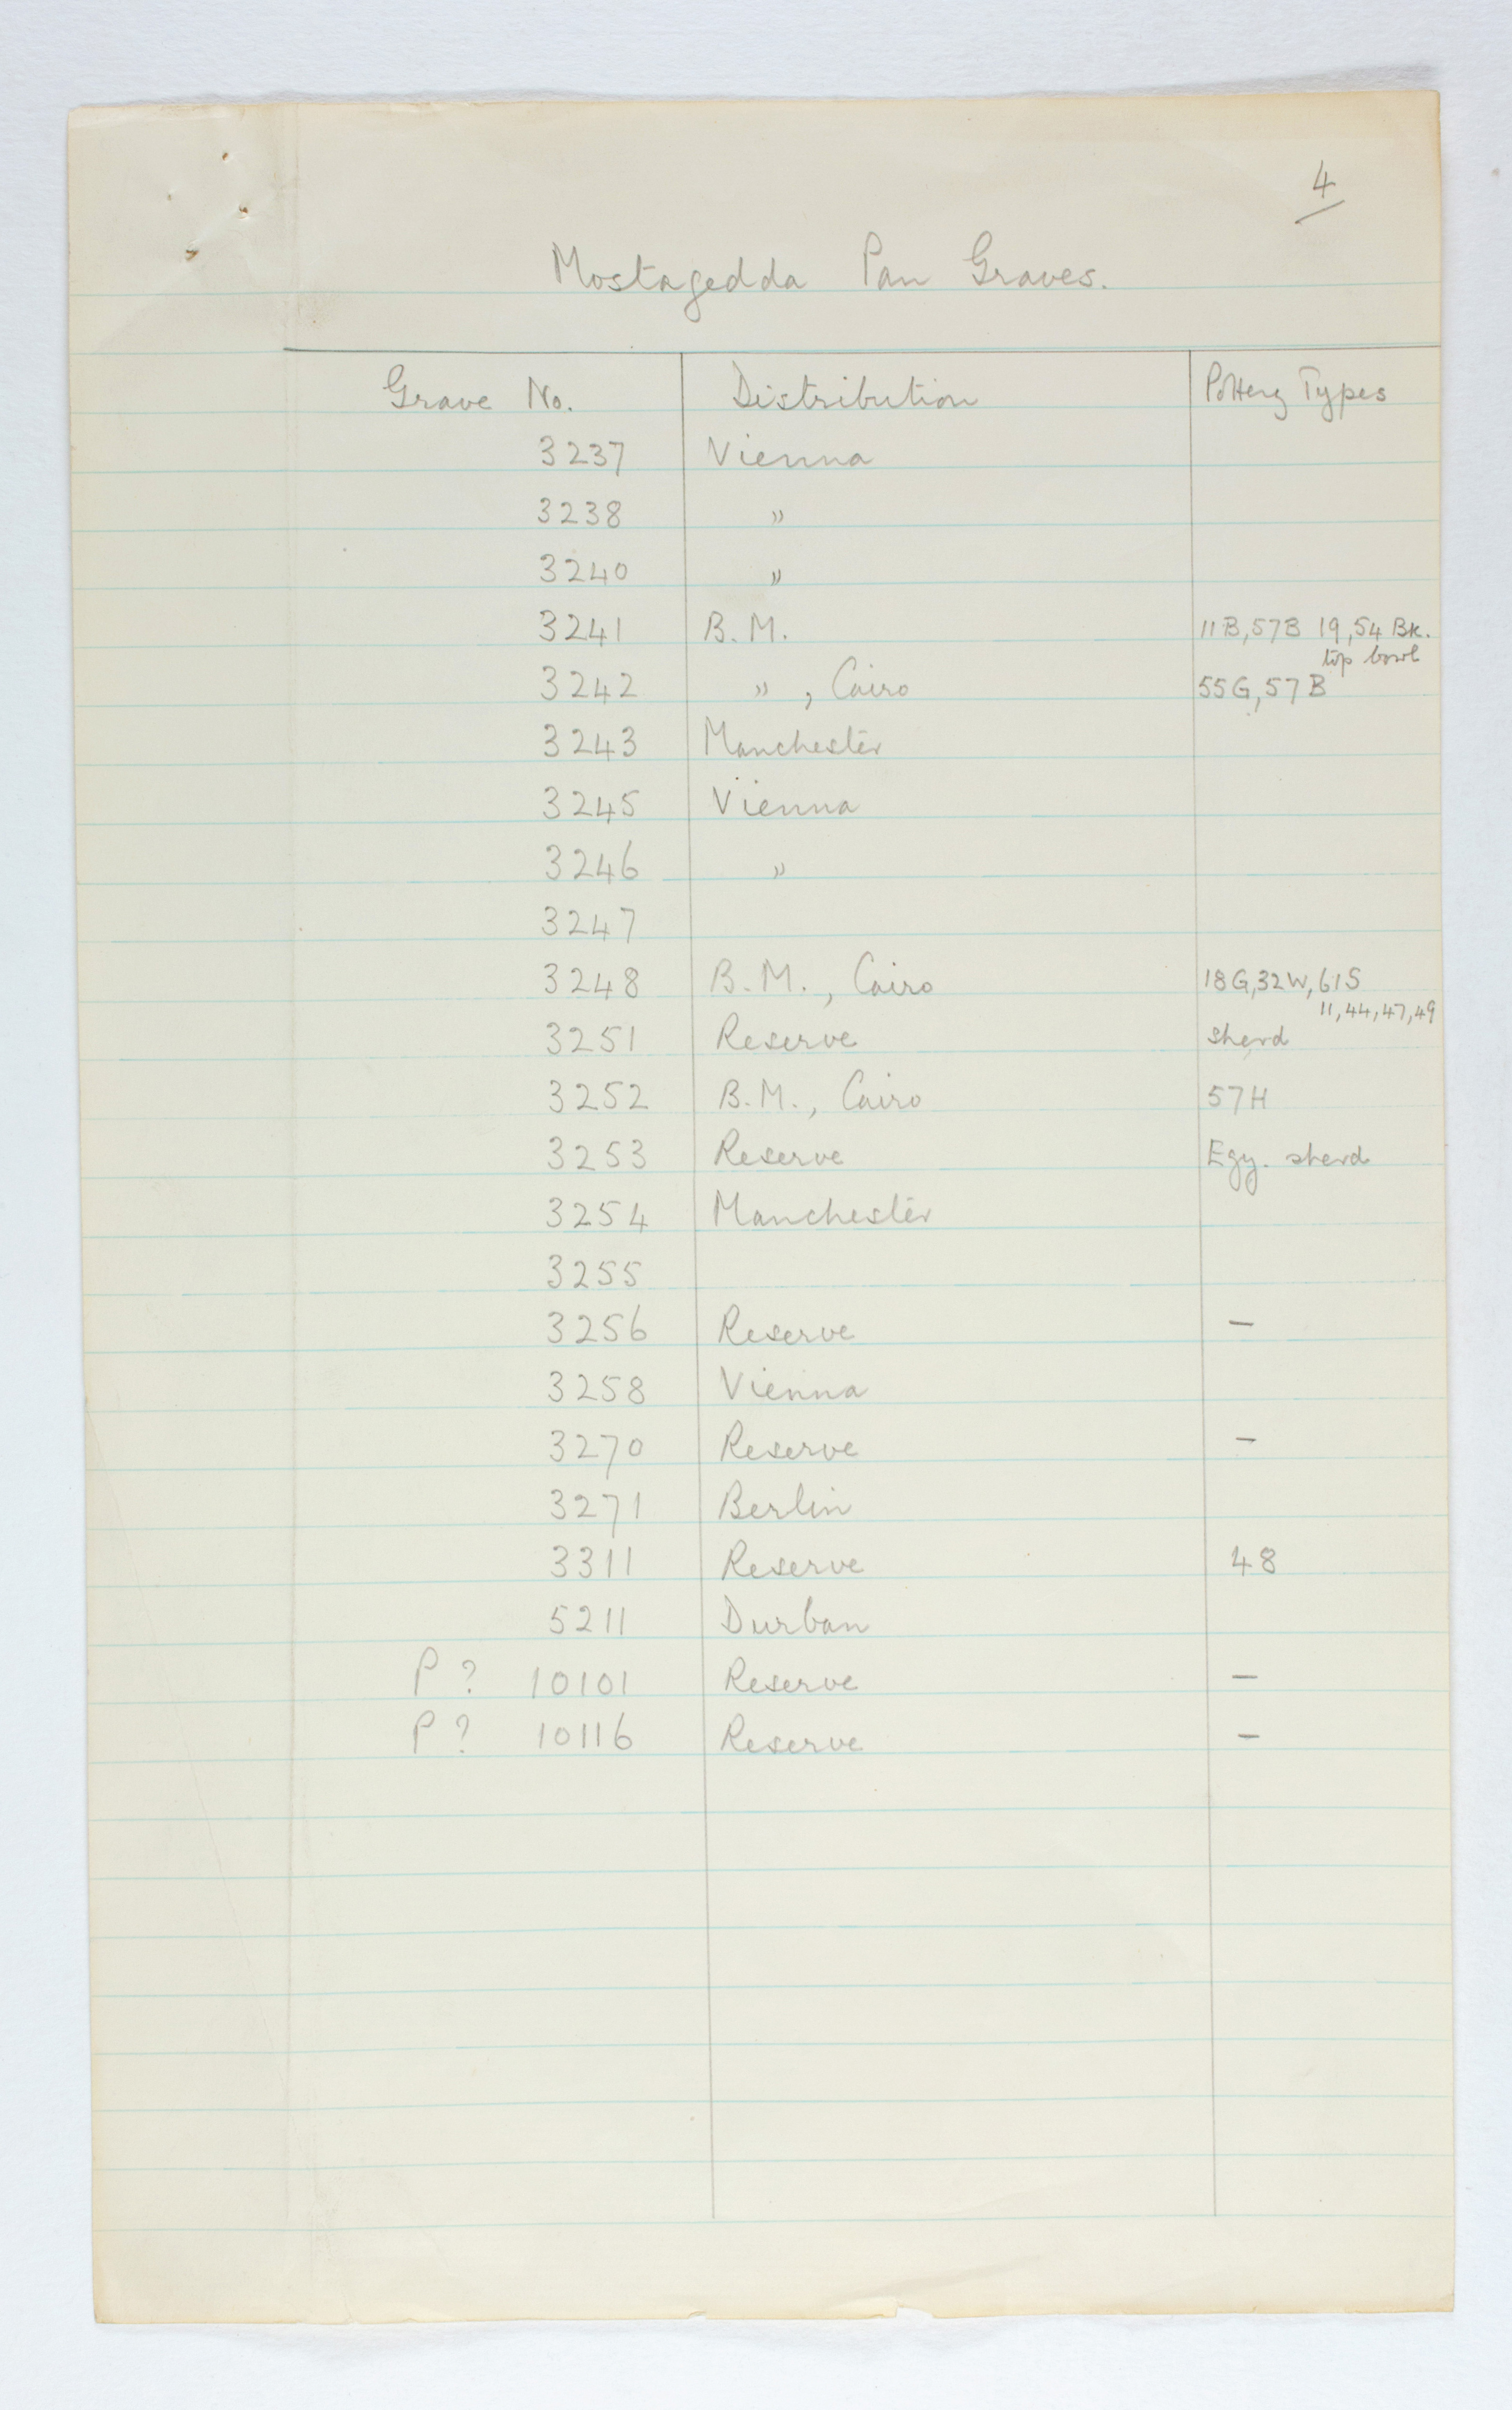 1929-30 Qau el-Kebir, Mostagedda Multiple institution list PMA/WFP1/D/31/1.8